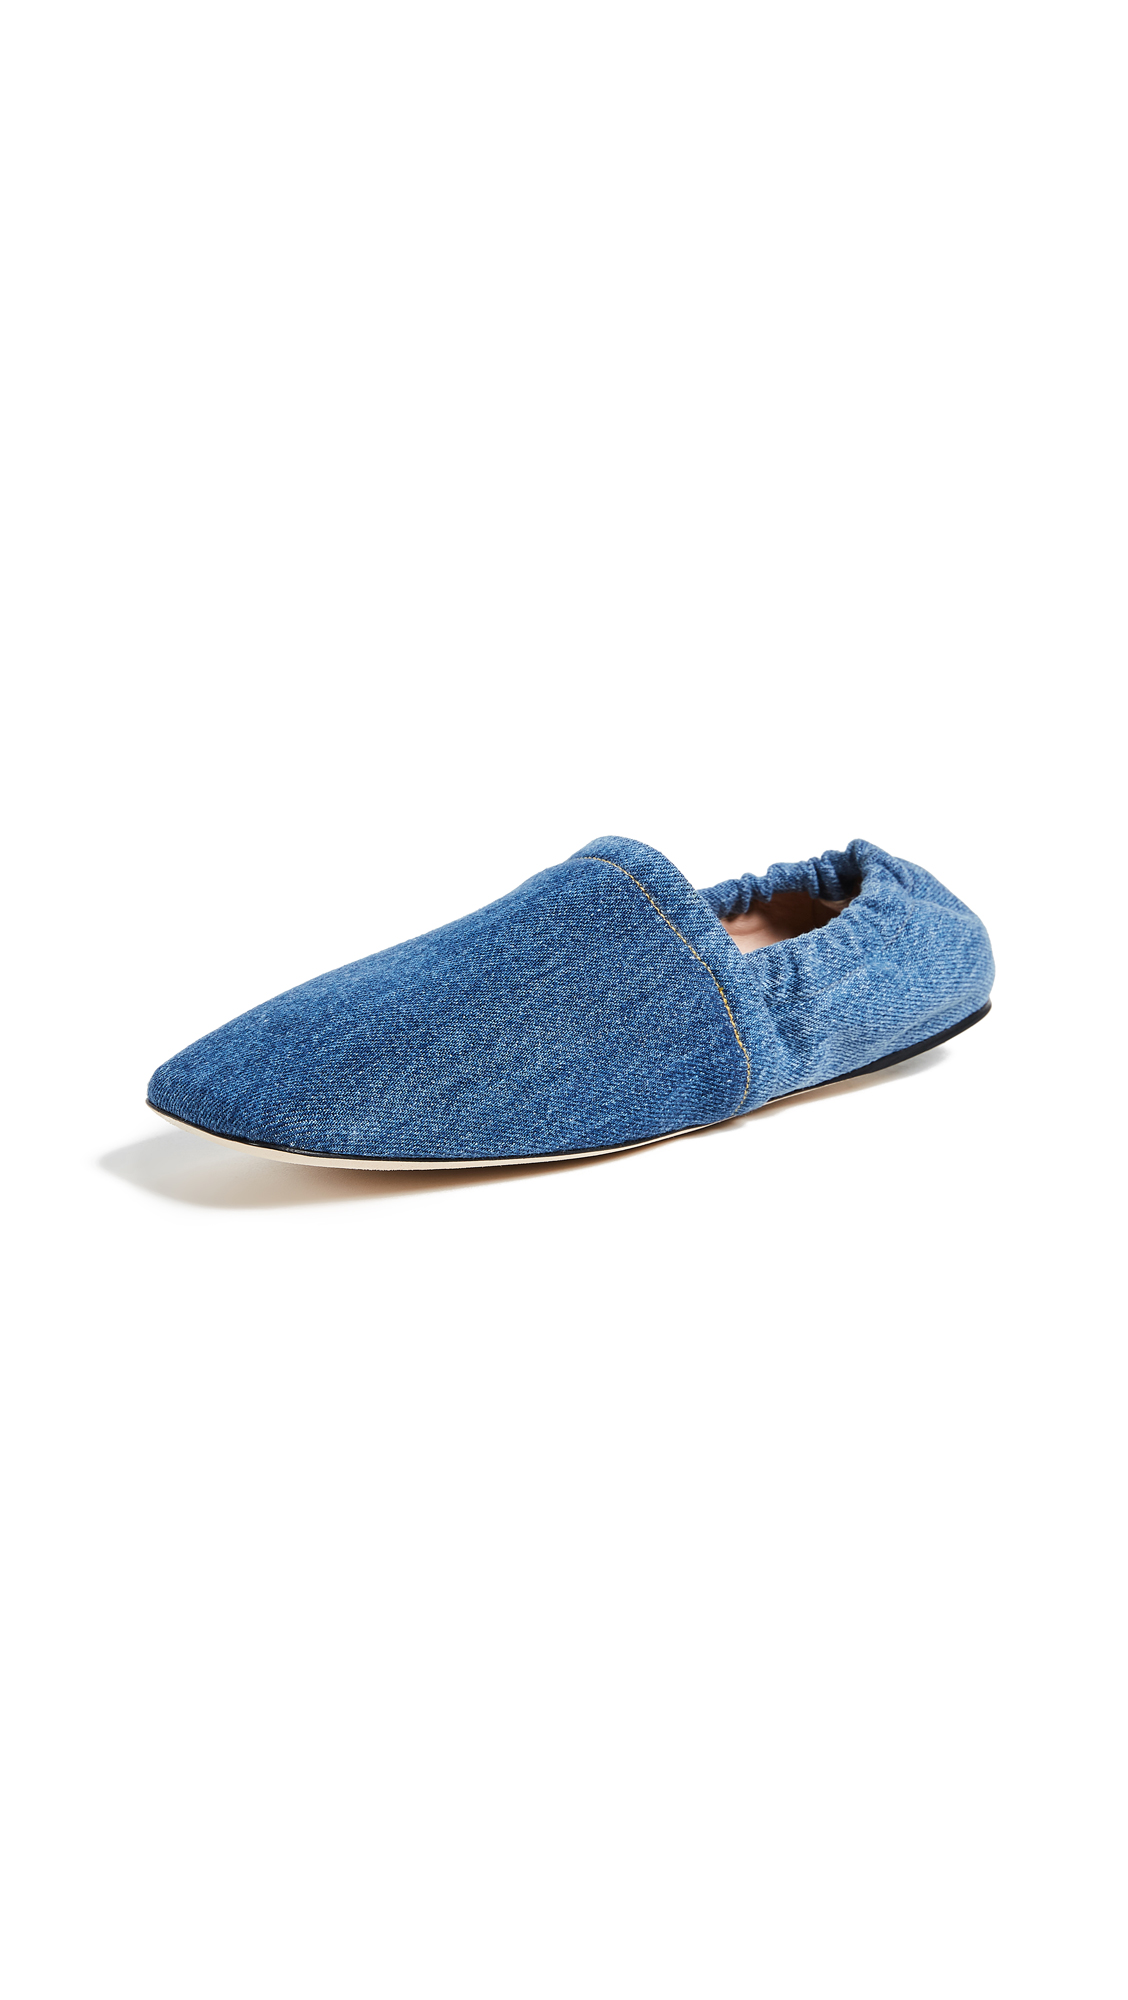 Acne Studios Toney Flats - Denim Blue